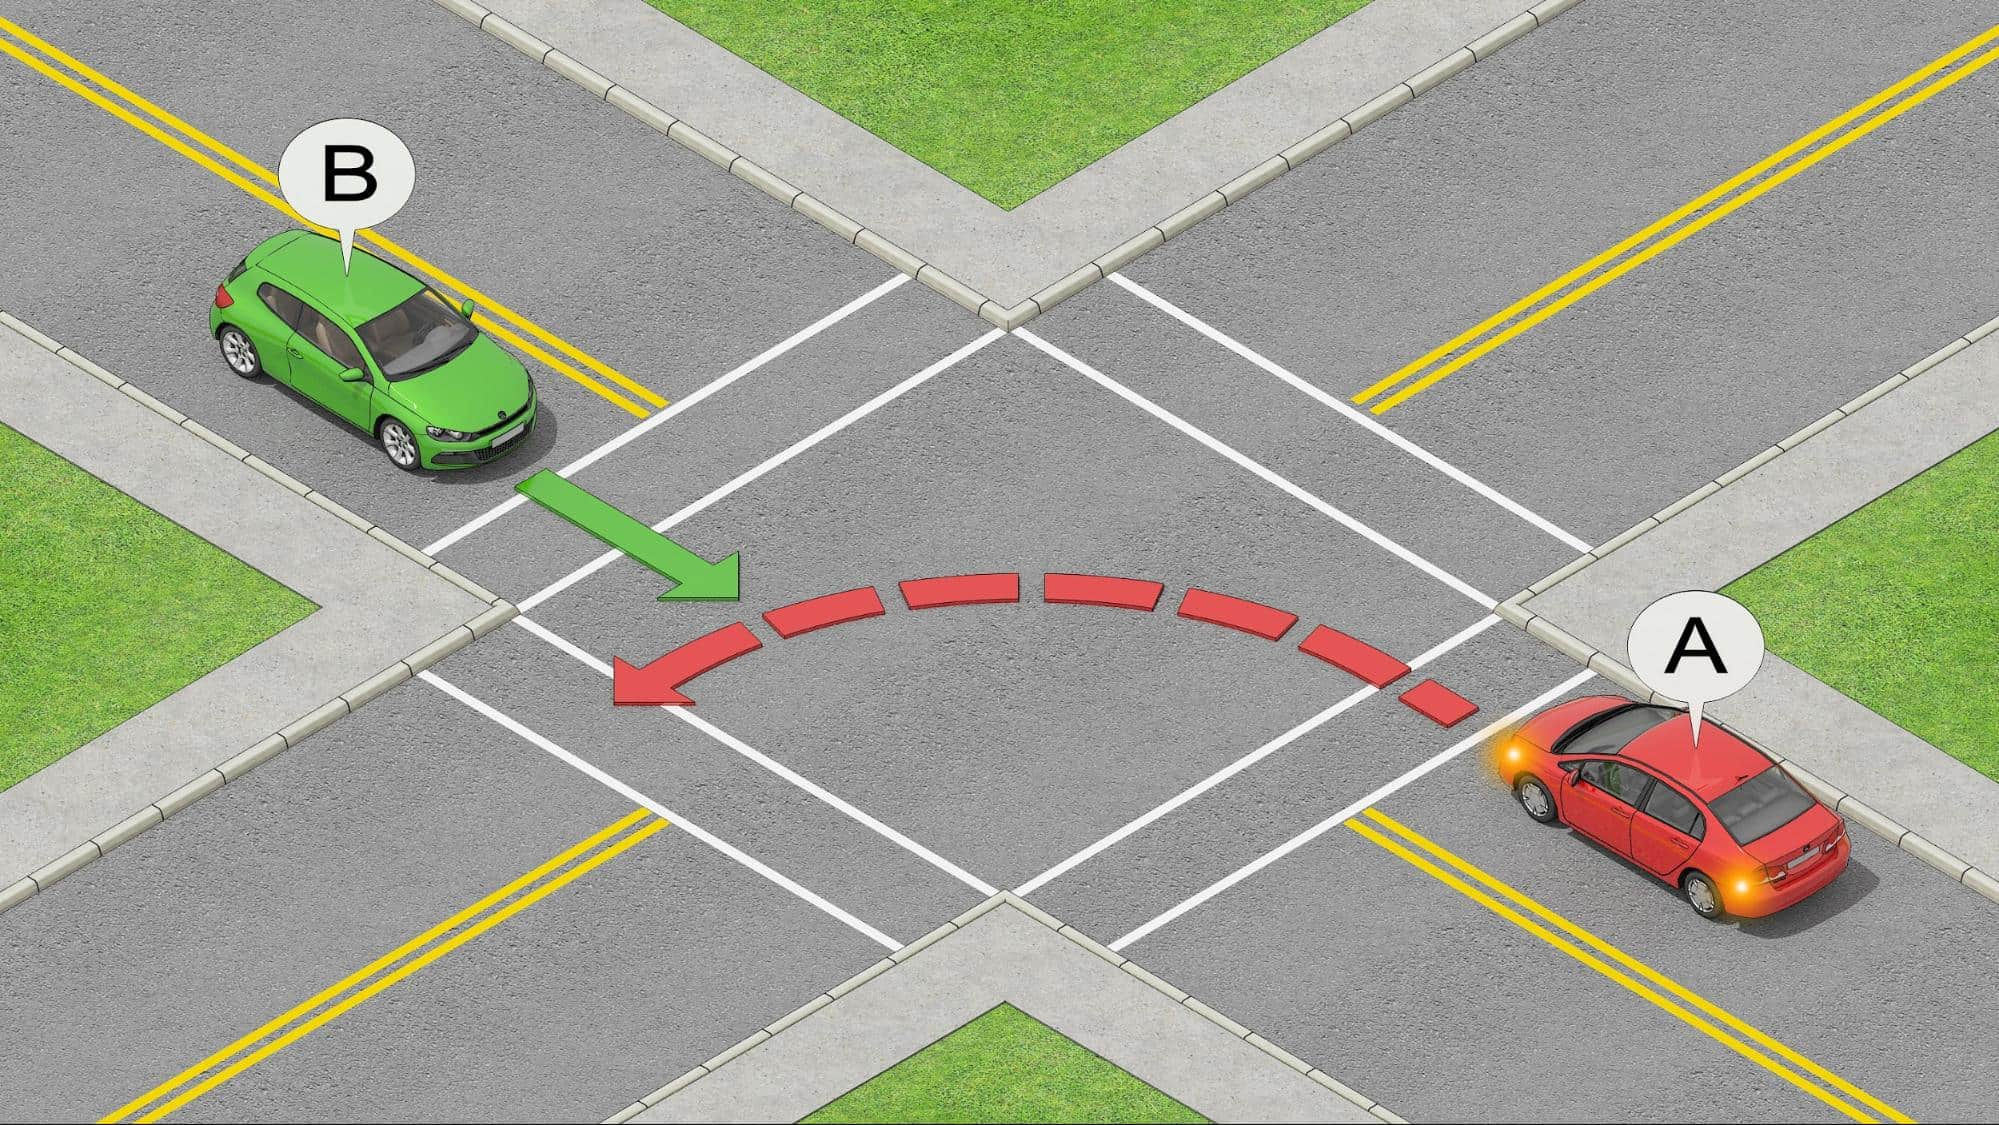 yield when turning left